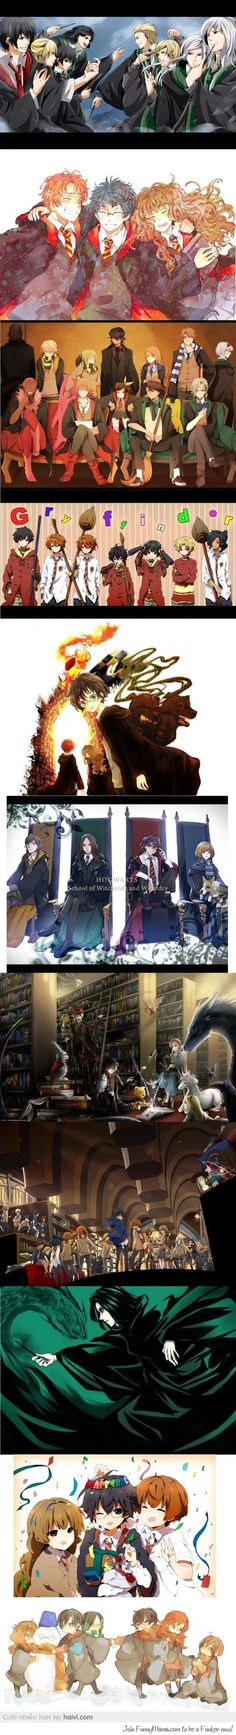 I jst wish dey make anime based on harry potter